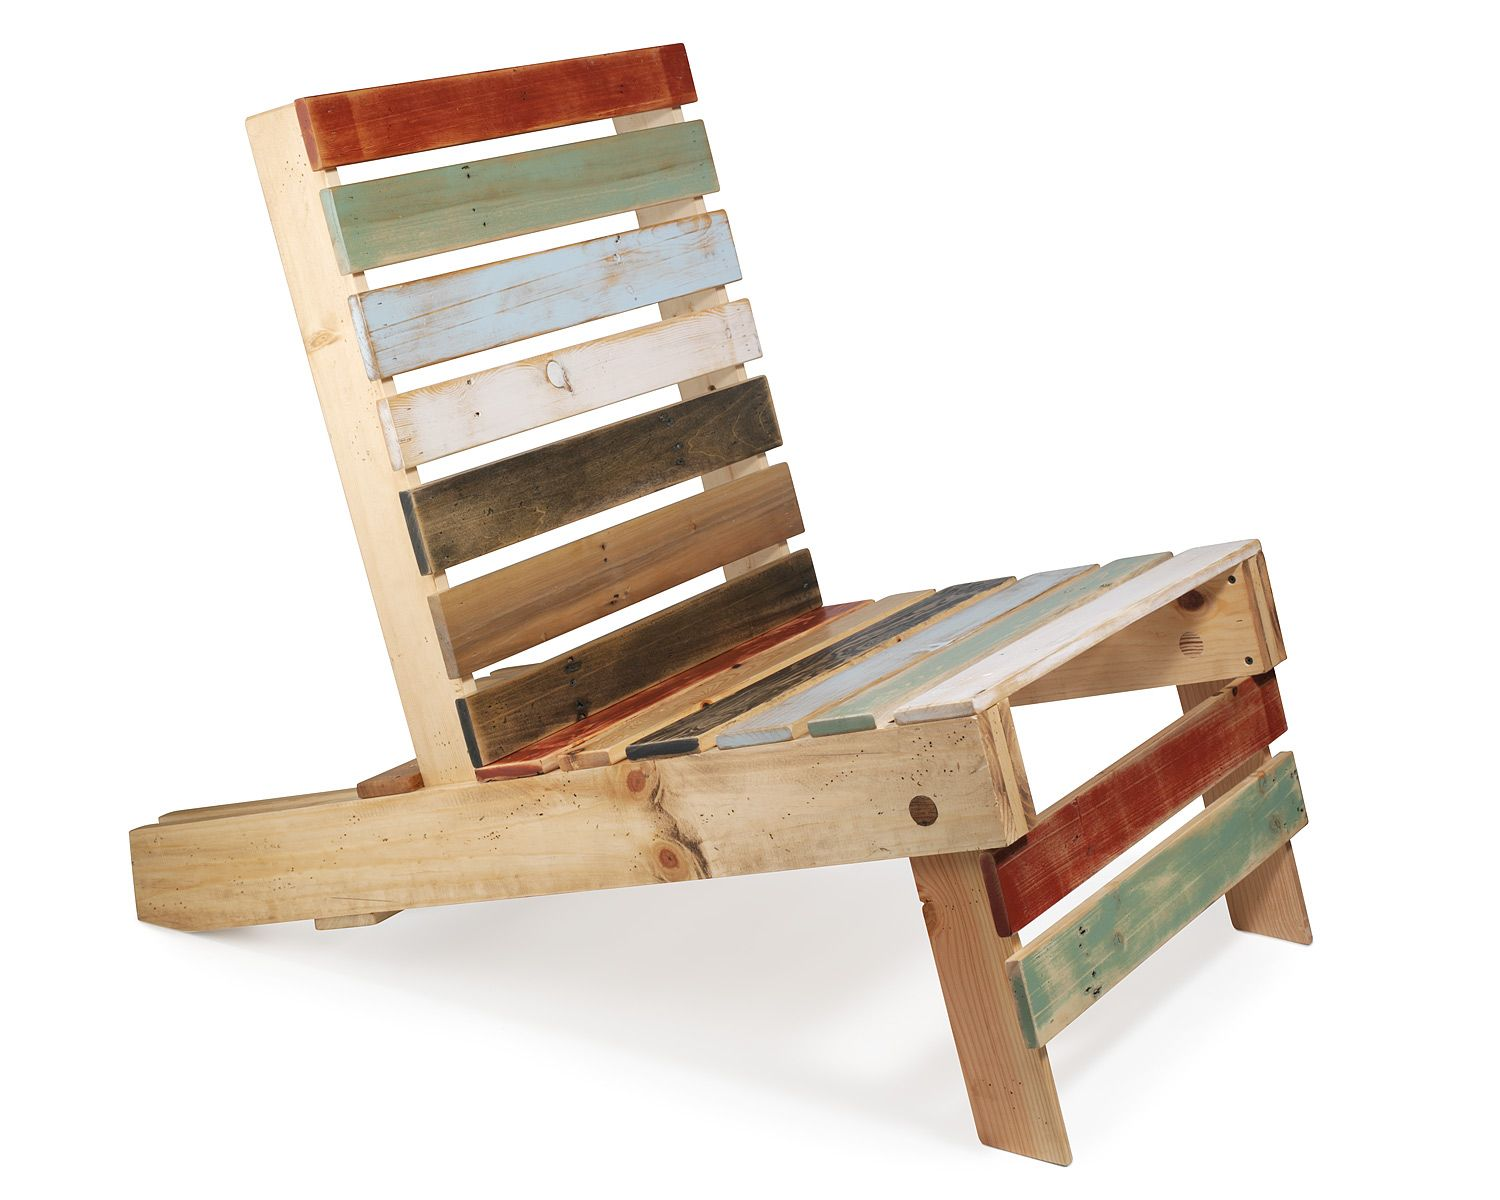 Paletten Stuhl Magnetic Pallet Chair Outdoor Projects Pinterest Möbel